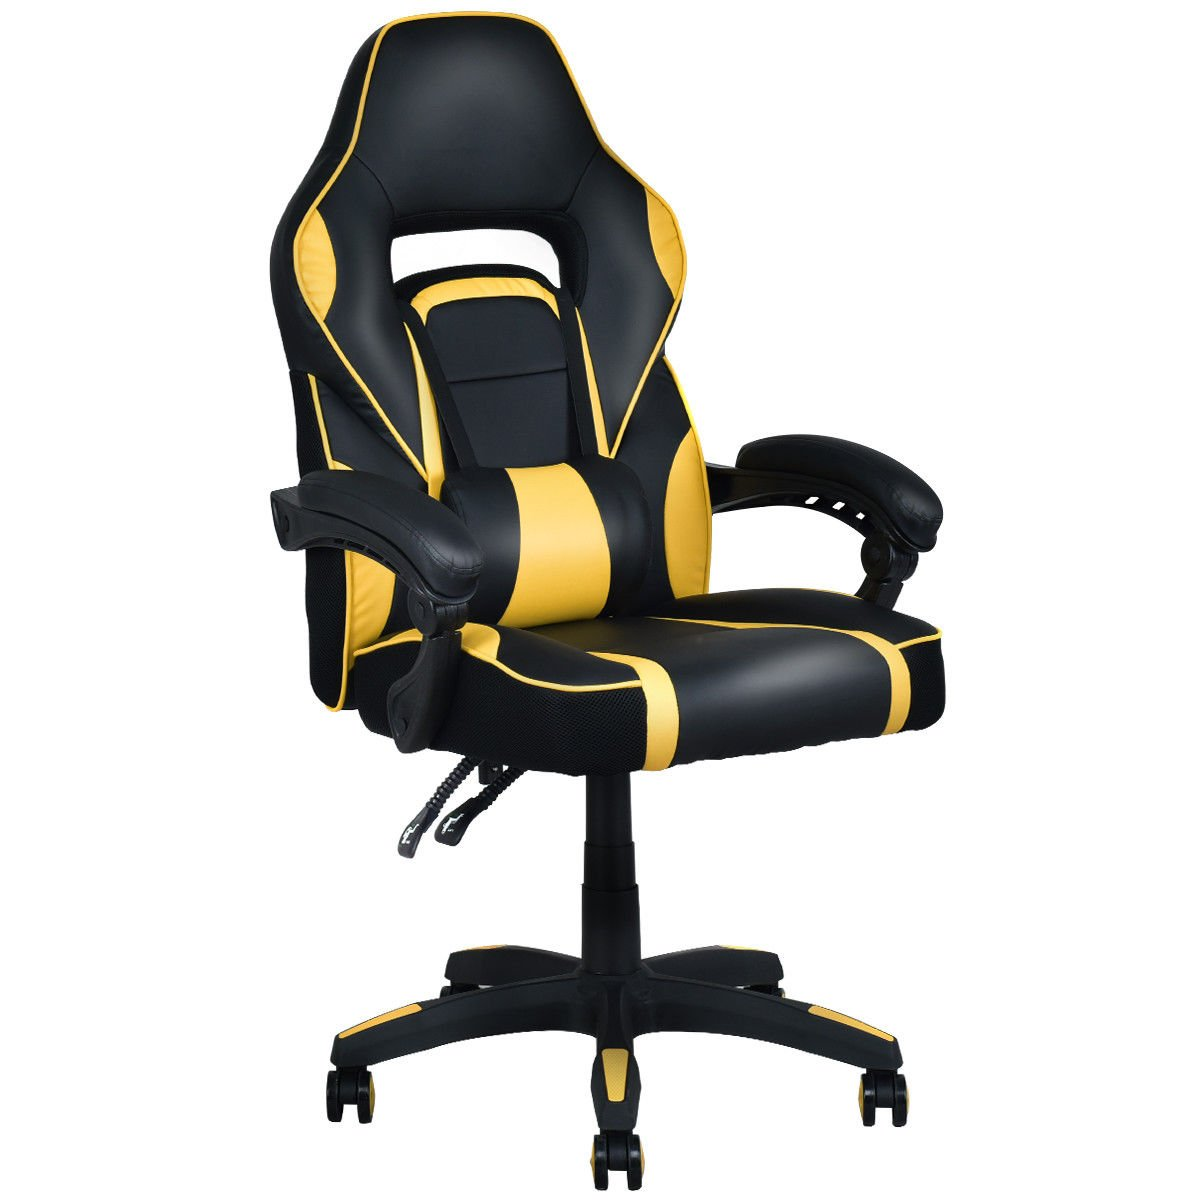 Miraculous Giantex Gaming Chair Ergonomic High Back Computer Task Chair Pu Leather Bucket Seat Swivel Home Office Desk Chair With Lumbar Support Racing Gaming Ocoug Best Dining Table And Chair Ideas Images Ocougorg